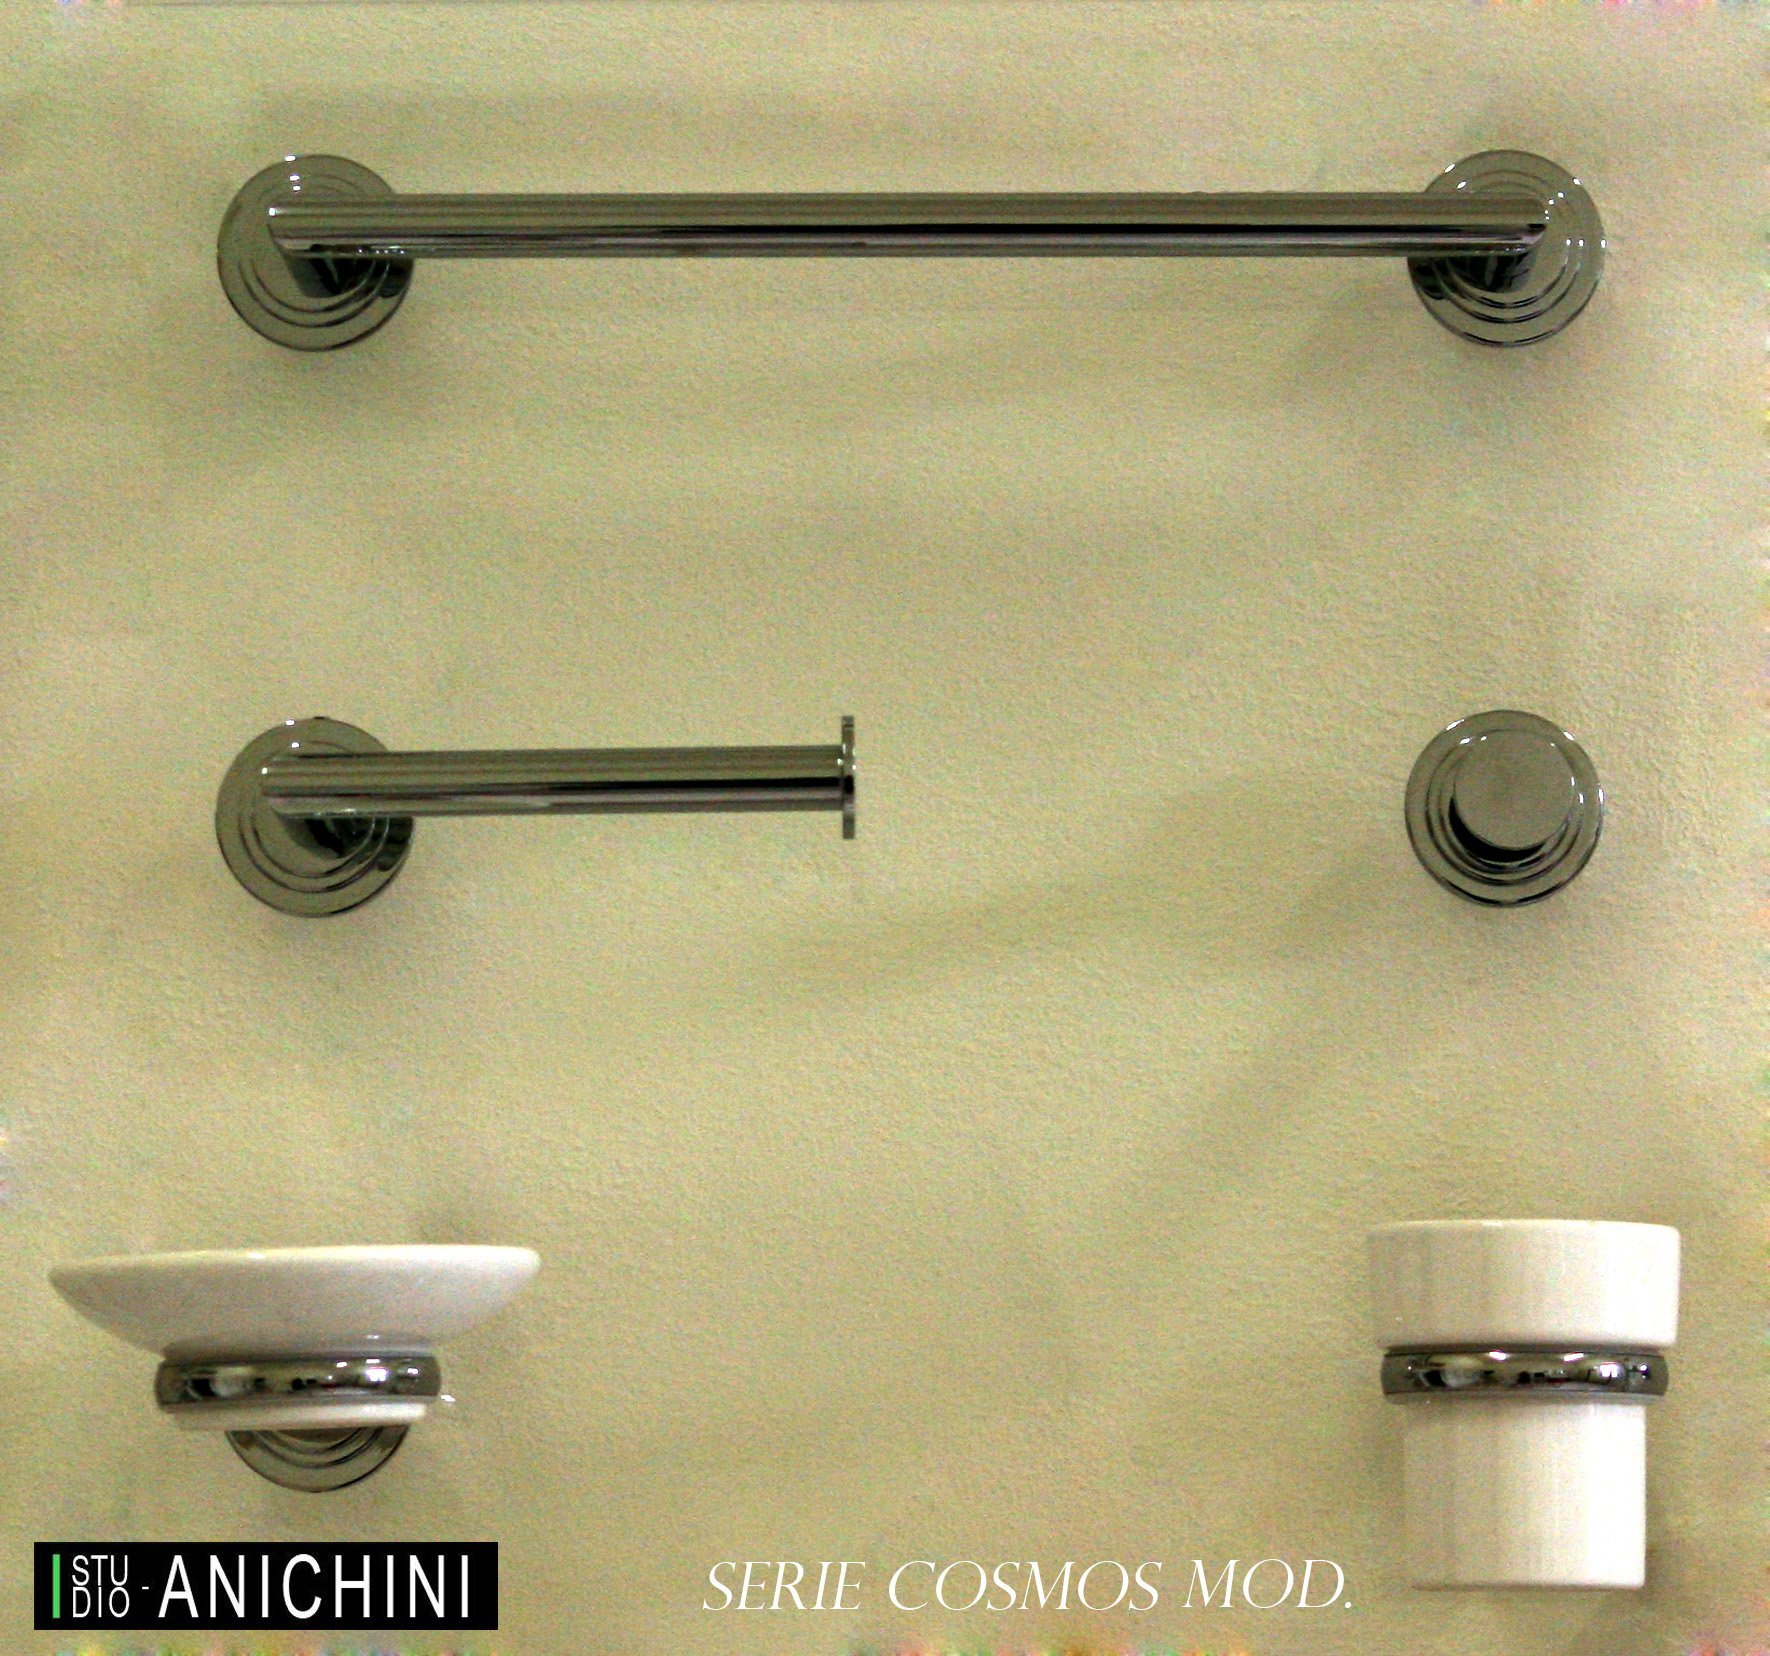 Bathroom accessories - Florence - Studio Anichini